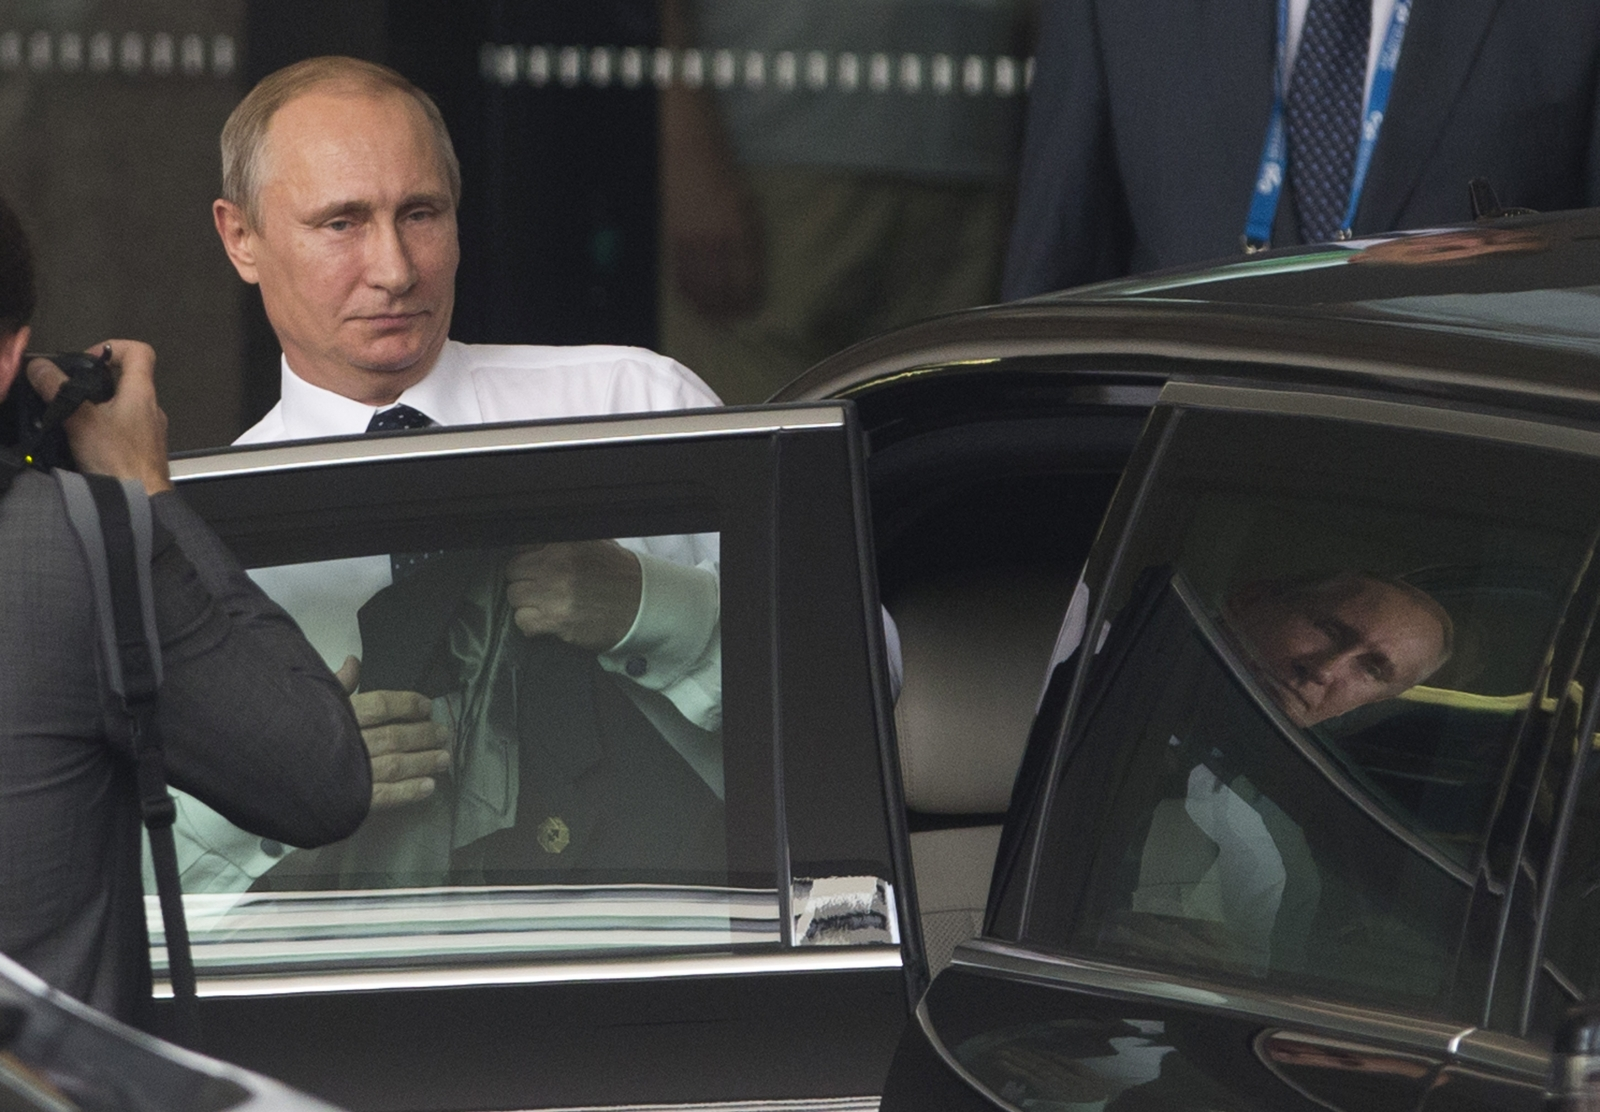 Russian president Vladimir Putin leaves G20 summit early